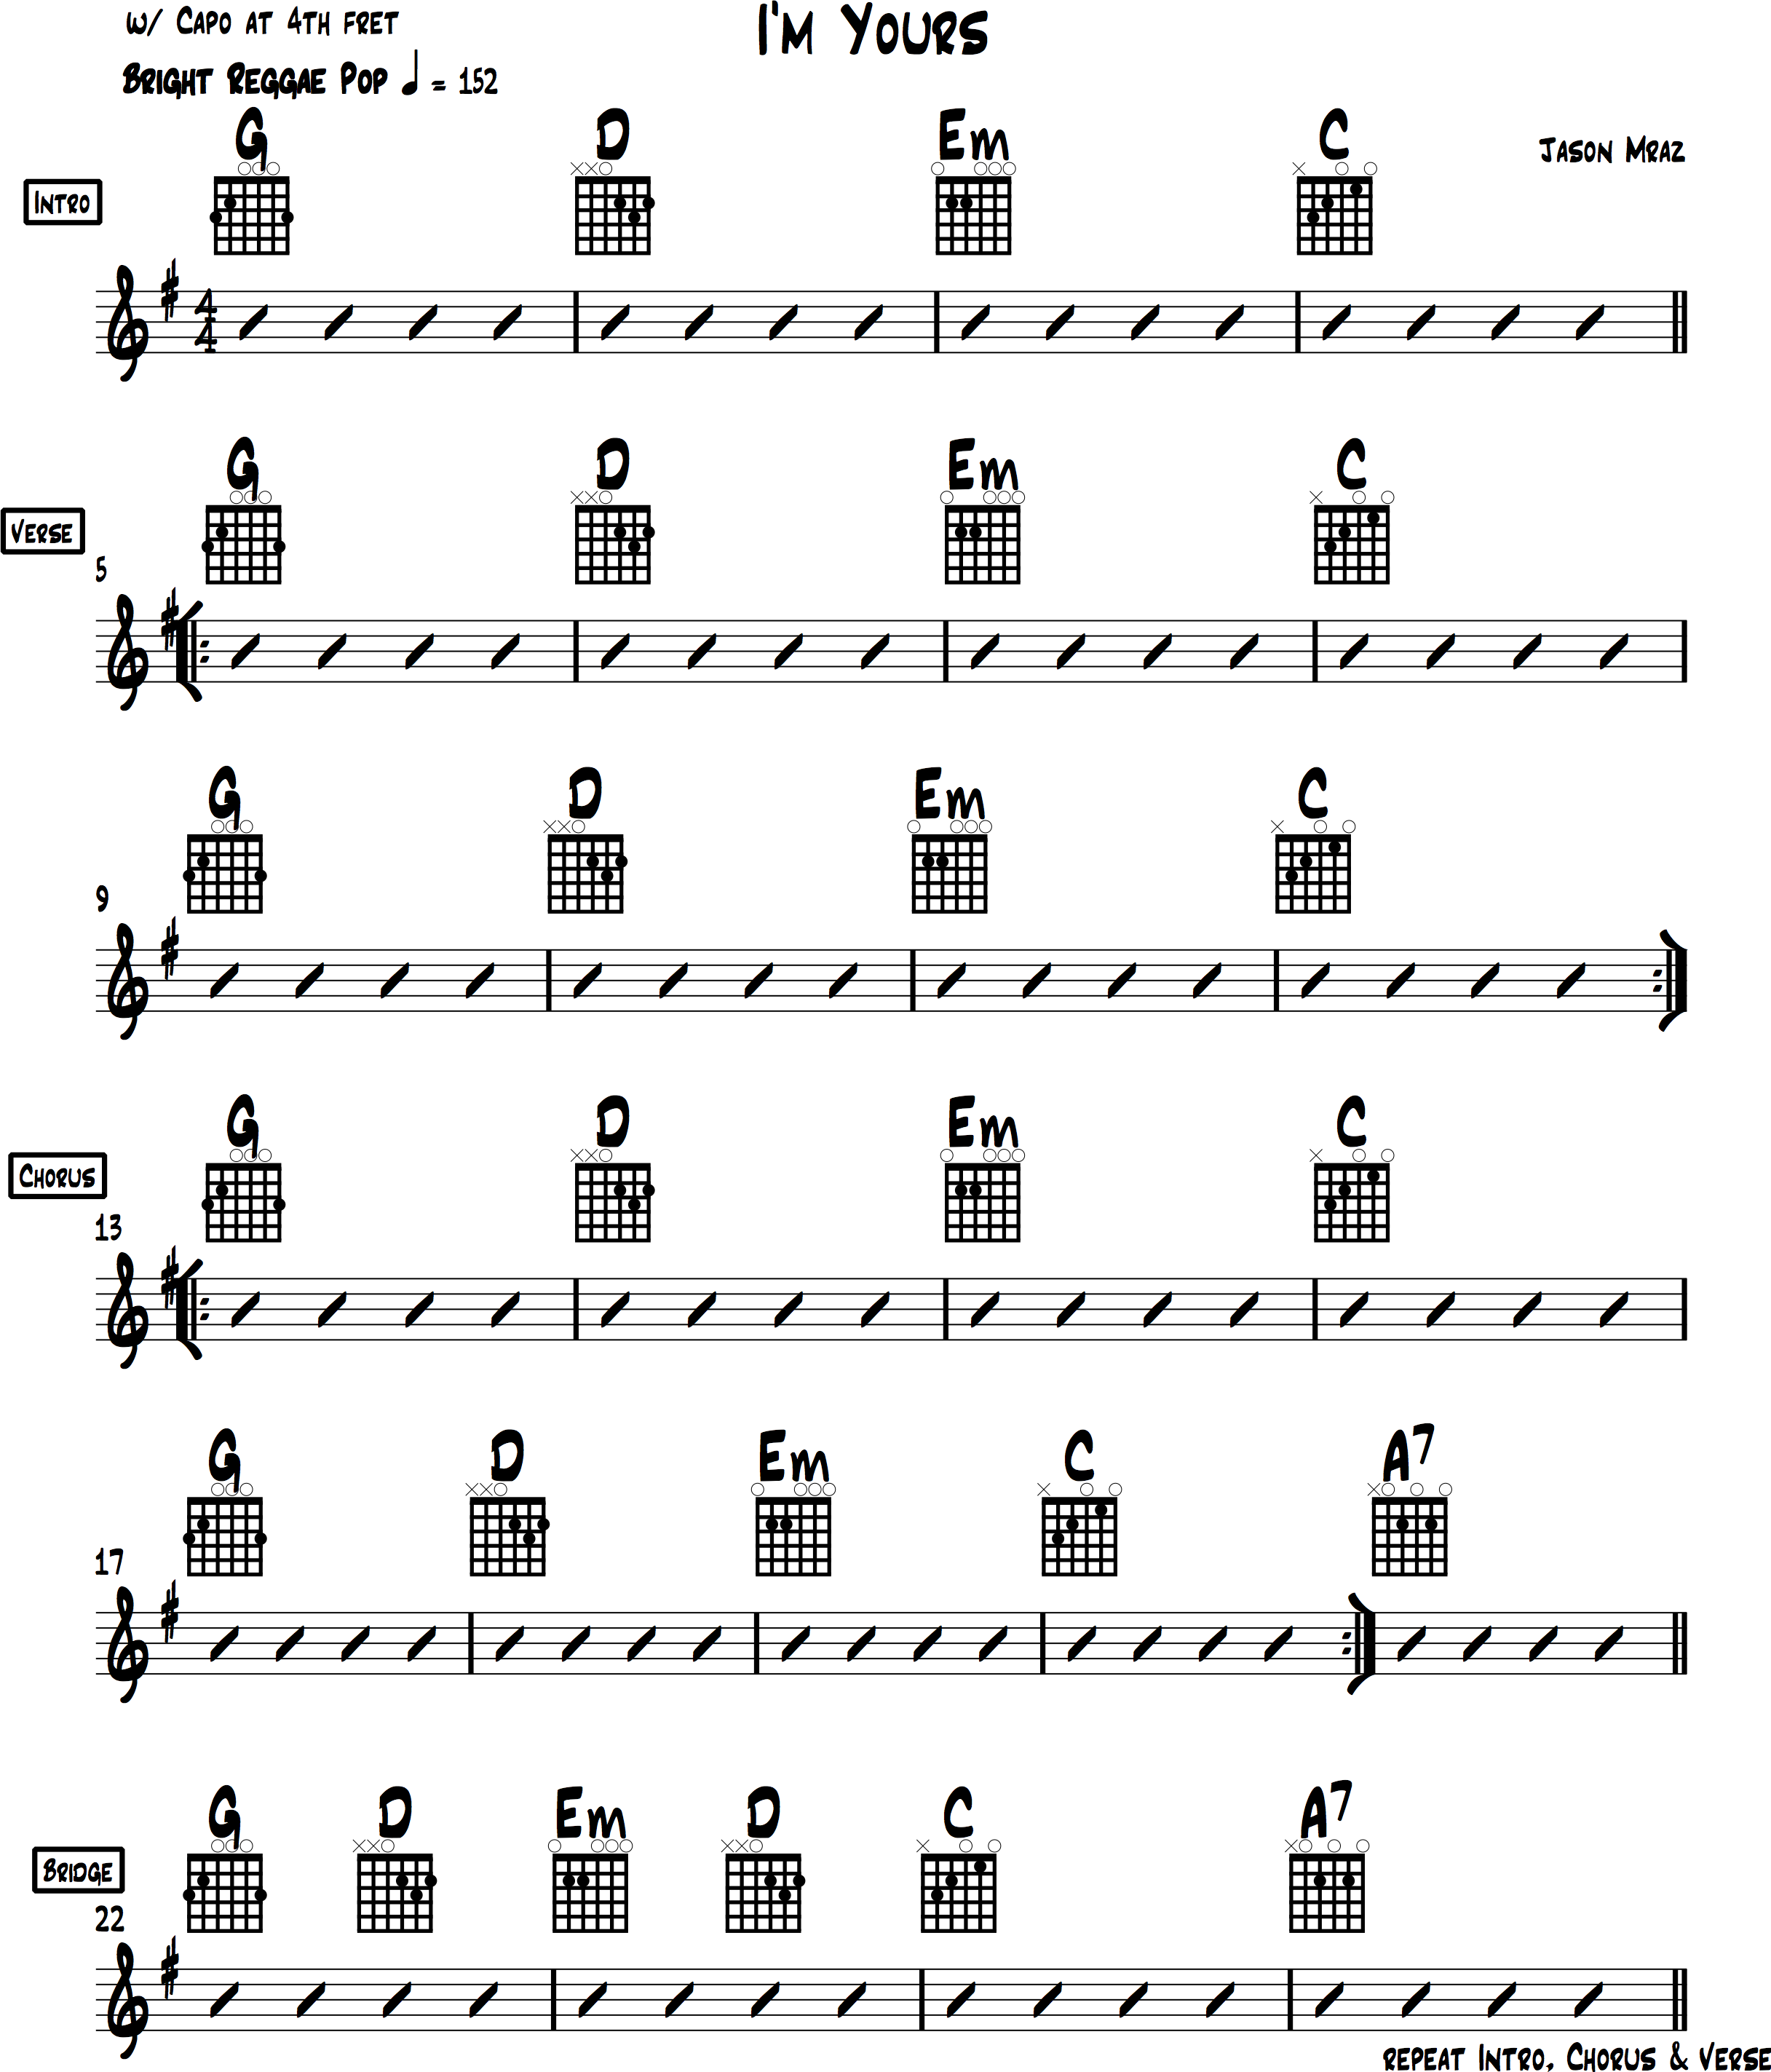 Im yours chords tutorial jason mraz im yours chords easy guitar tabs hexwebz Images